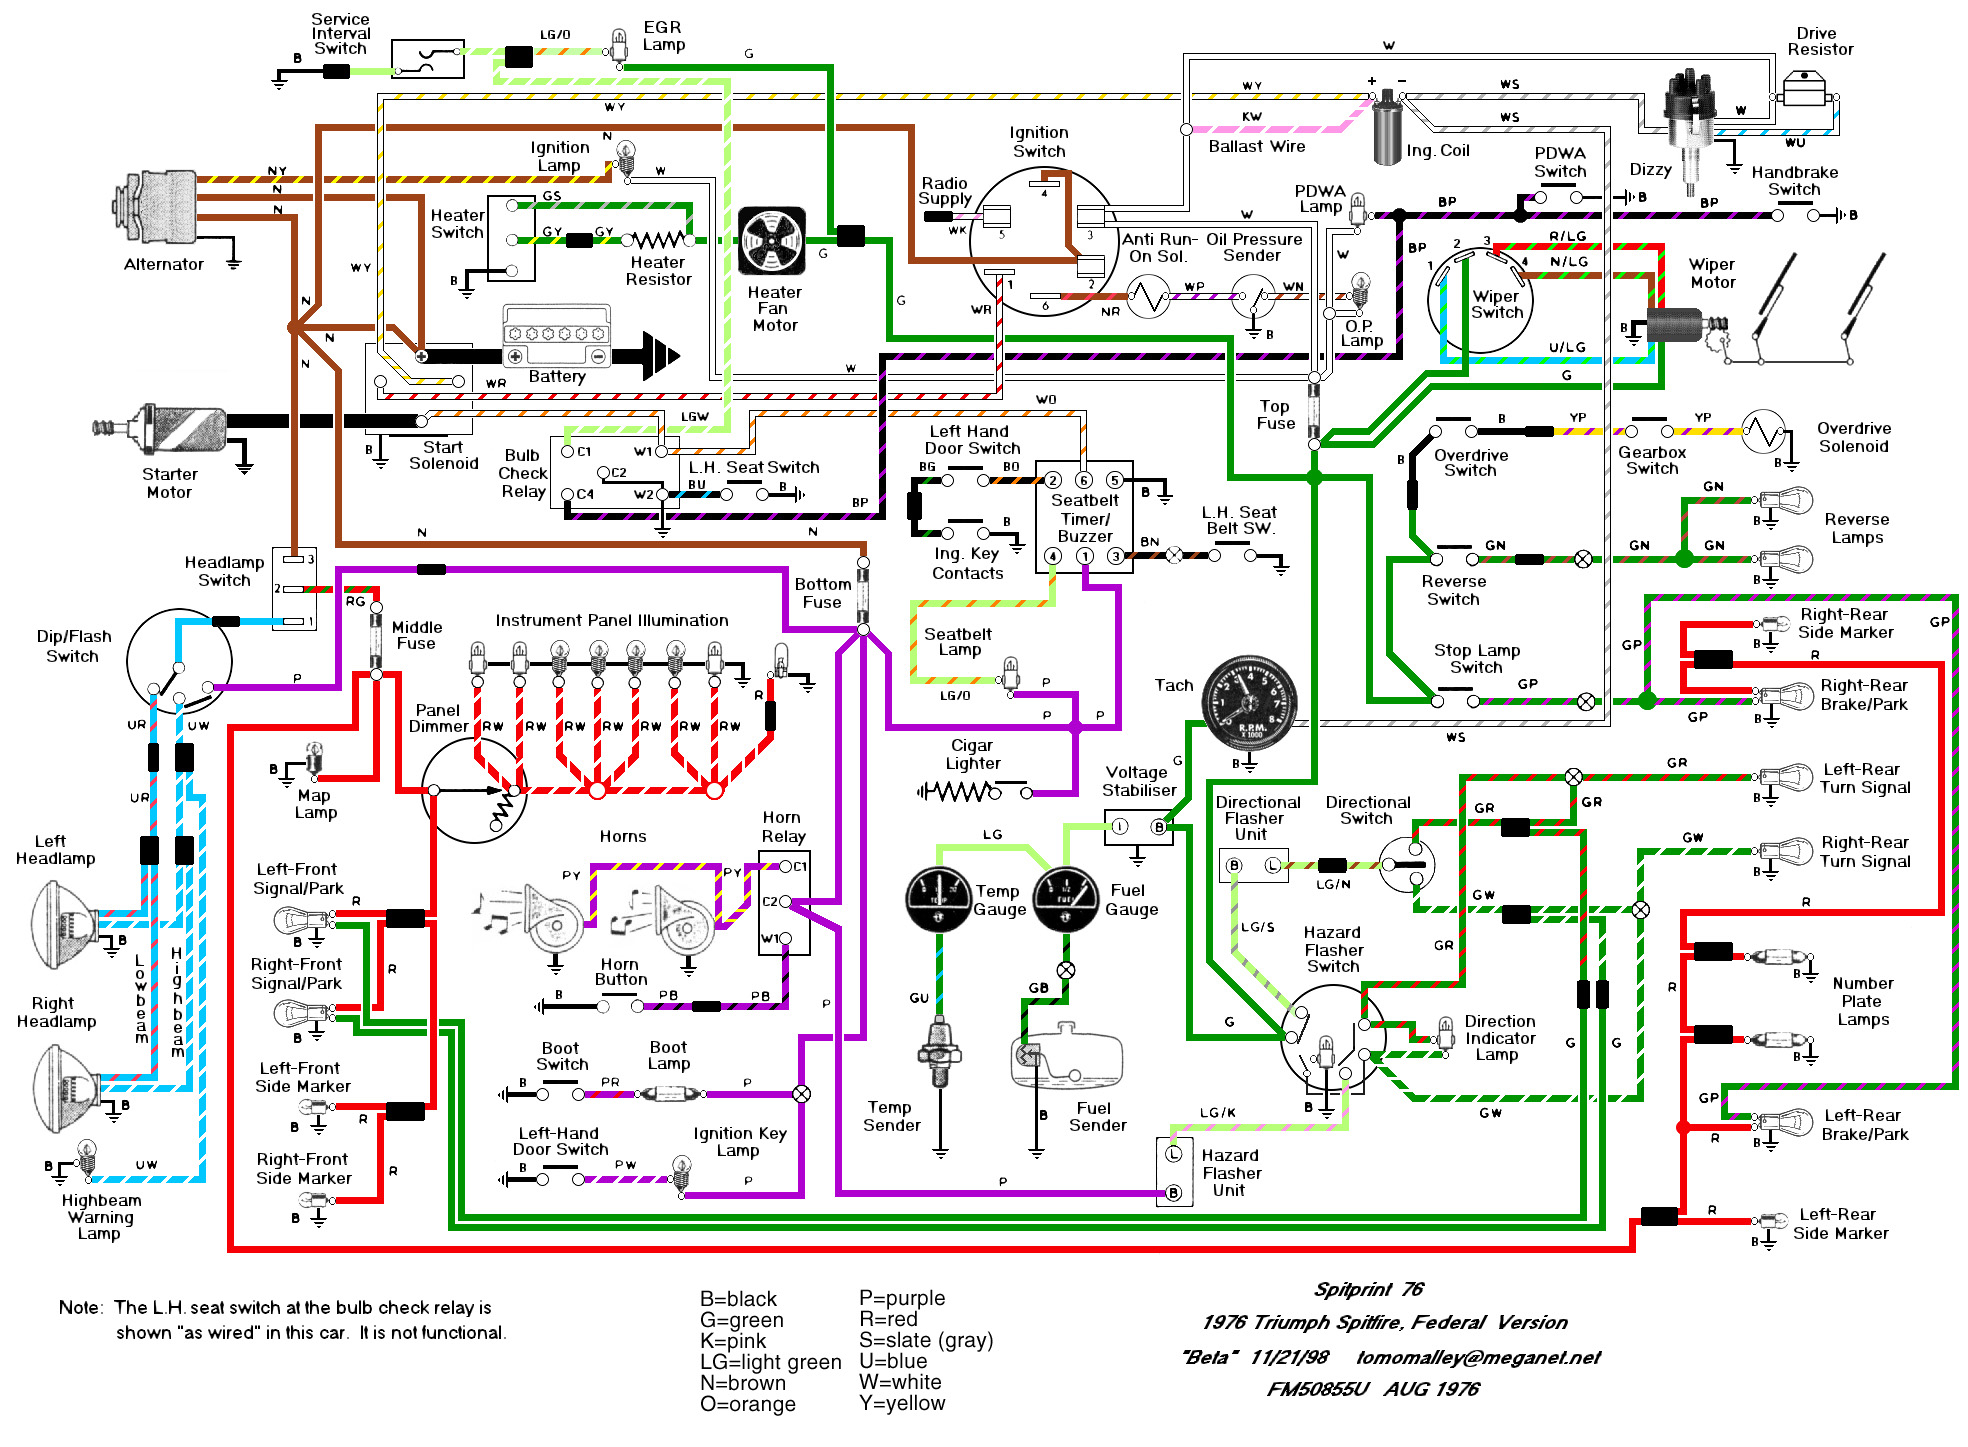 76diagram ford courier wiring diagram 1978 ford courier wiring diagram electrical wiring diagram ford courier at gsmportal.co